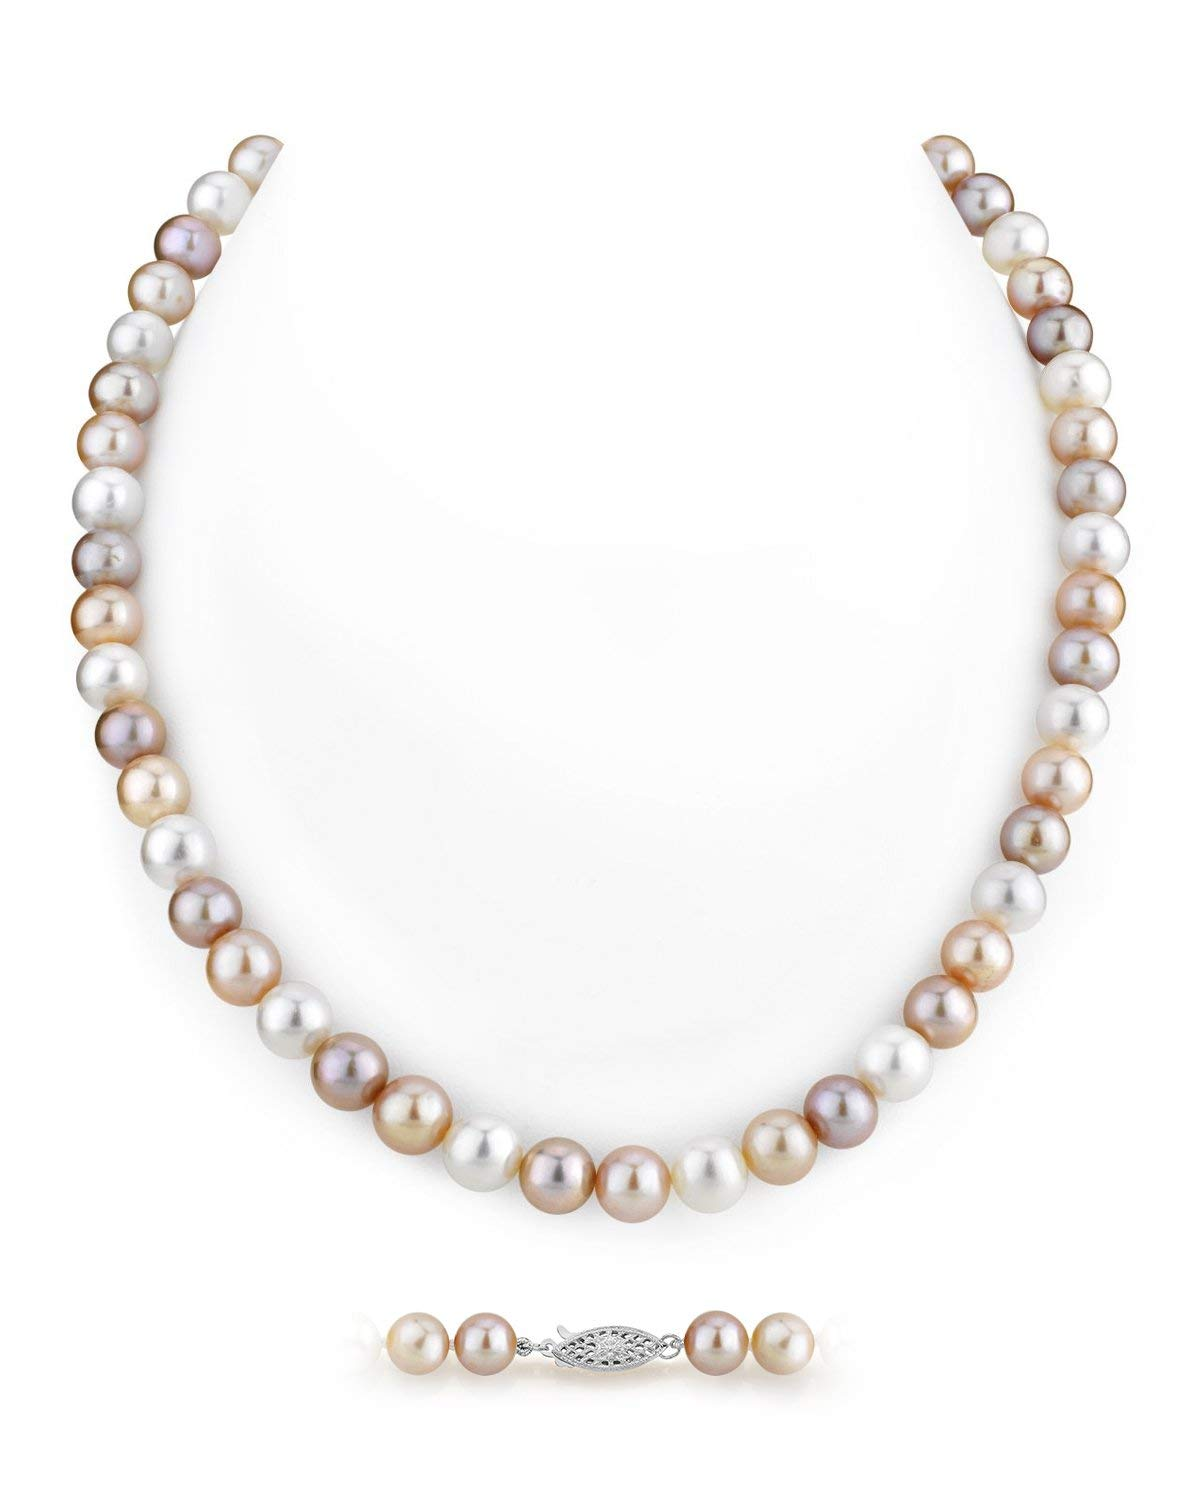 THE PEARL SOURCE 7-8mm AAA Quality Round Multicolor Freshwater Cultured Pearl Necklace for Women in 24'' Matinee Length by The Pearl Source